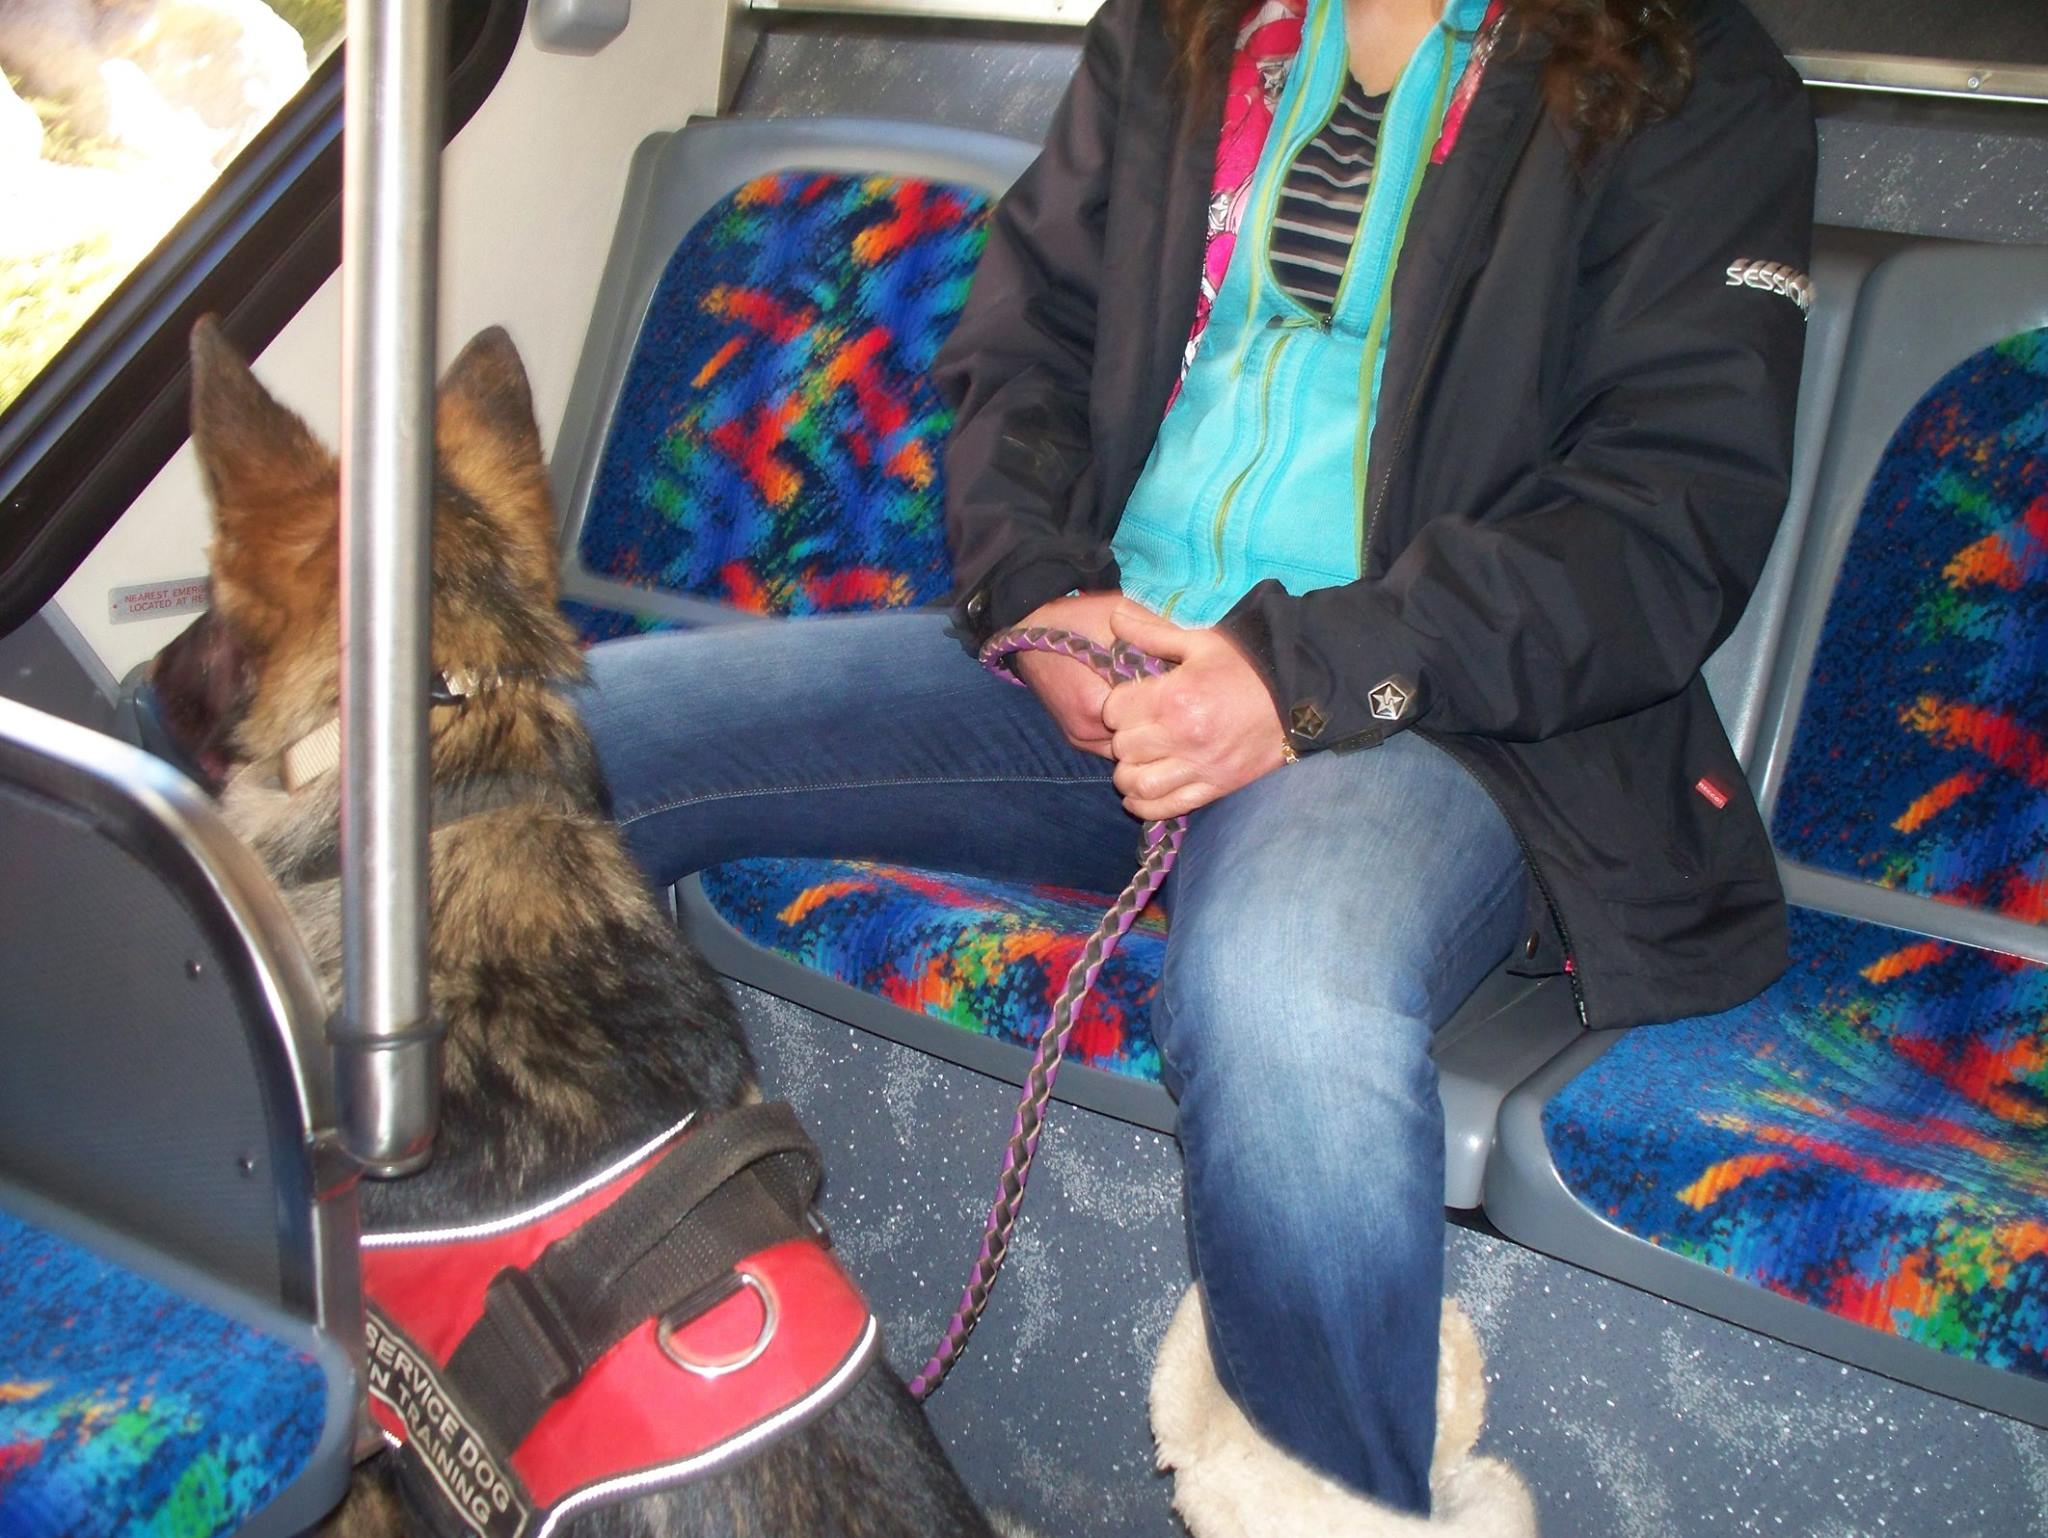 A shepherd riding on a bus while working in the socialization program. We do not stop socialization at the puppy level. We continue to advance a dog for as long as he/she is with us. This pup will make a well rounded family companion or she may be selected for service work.